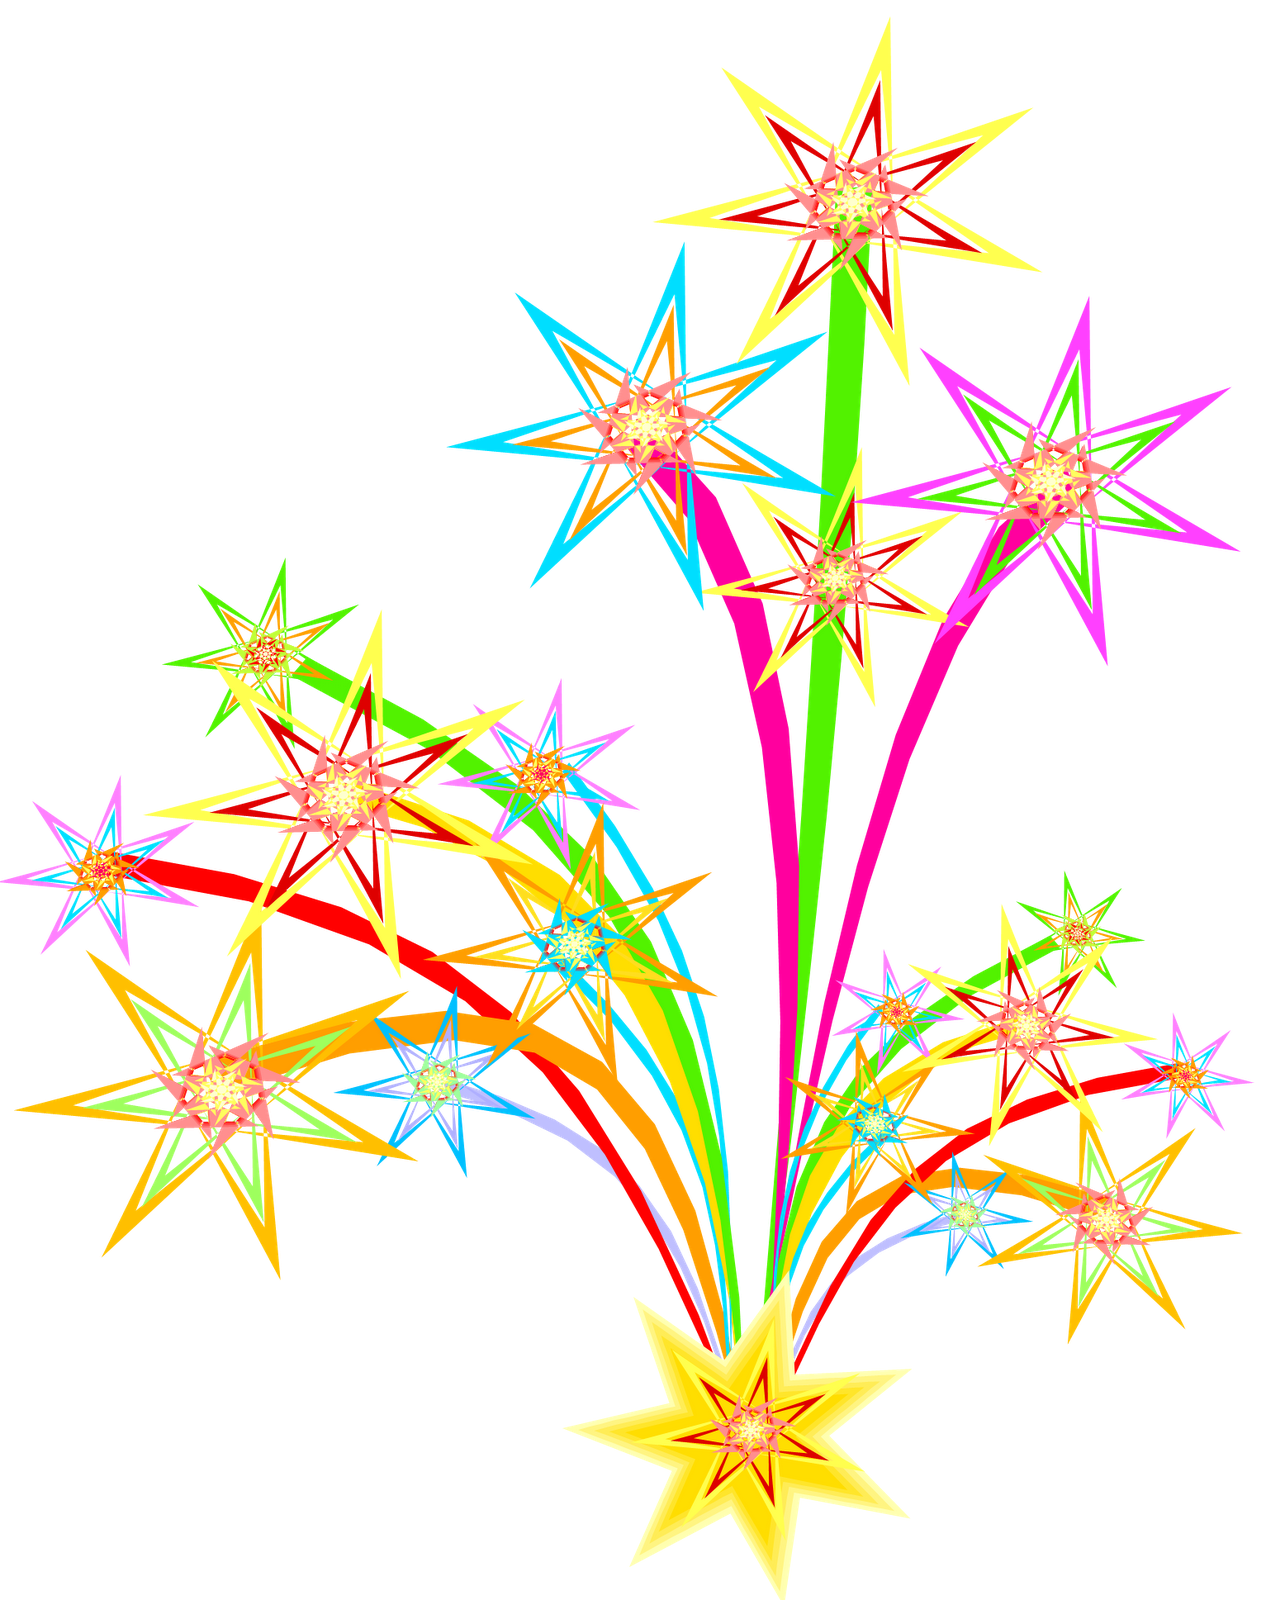 Calendar Background Designs Png : Fireworks png picture free icons and backgrounds